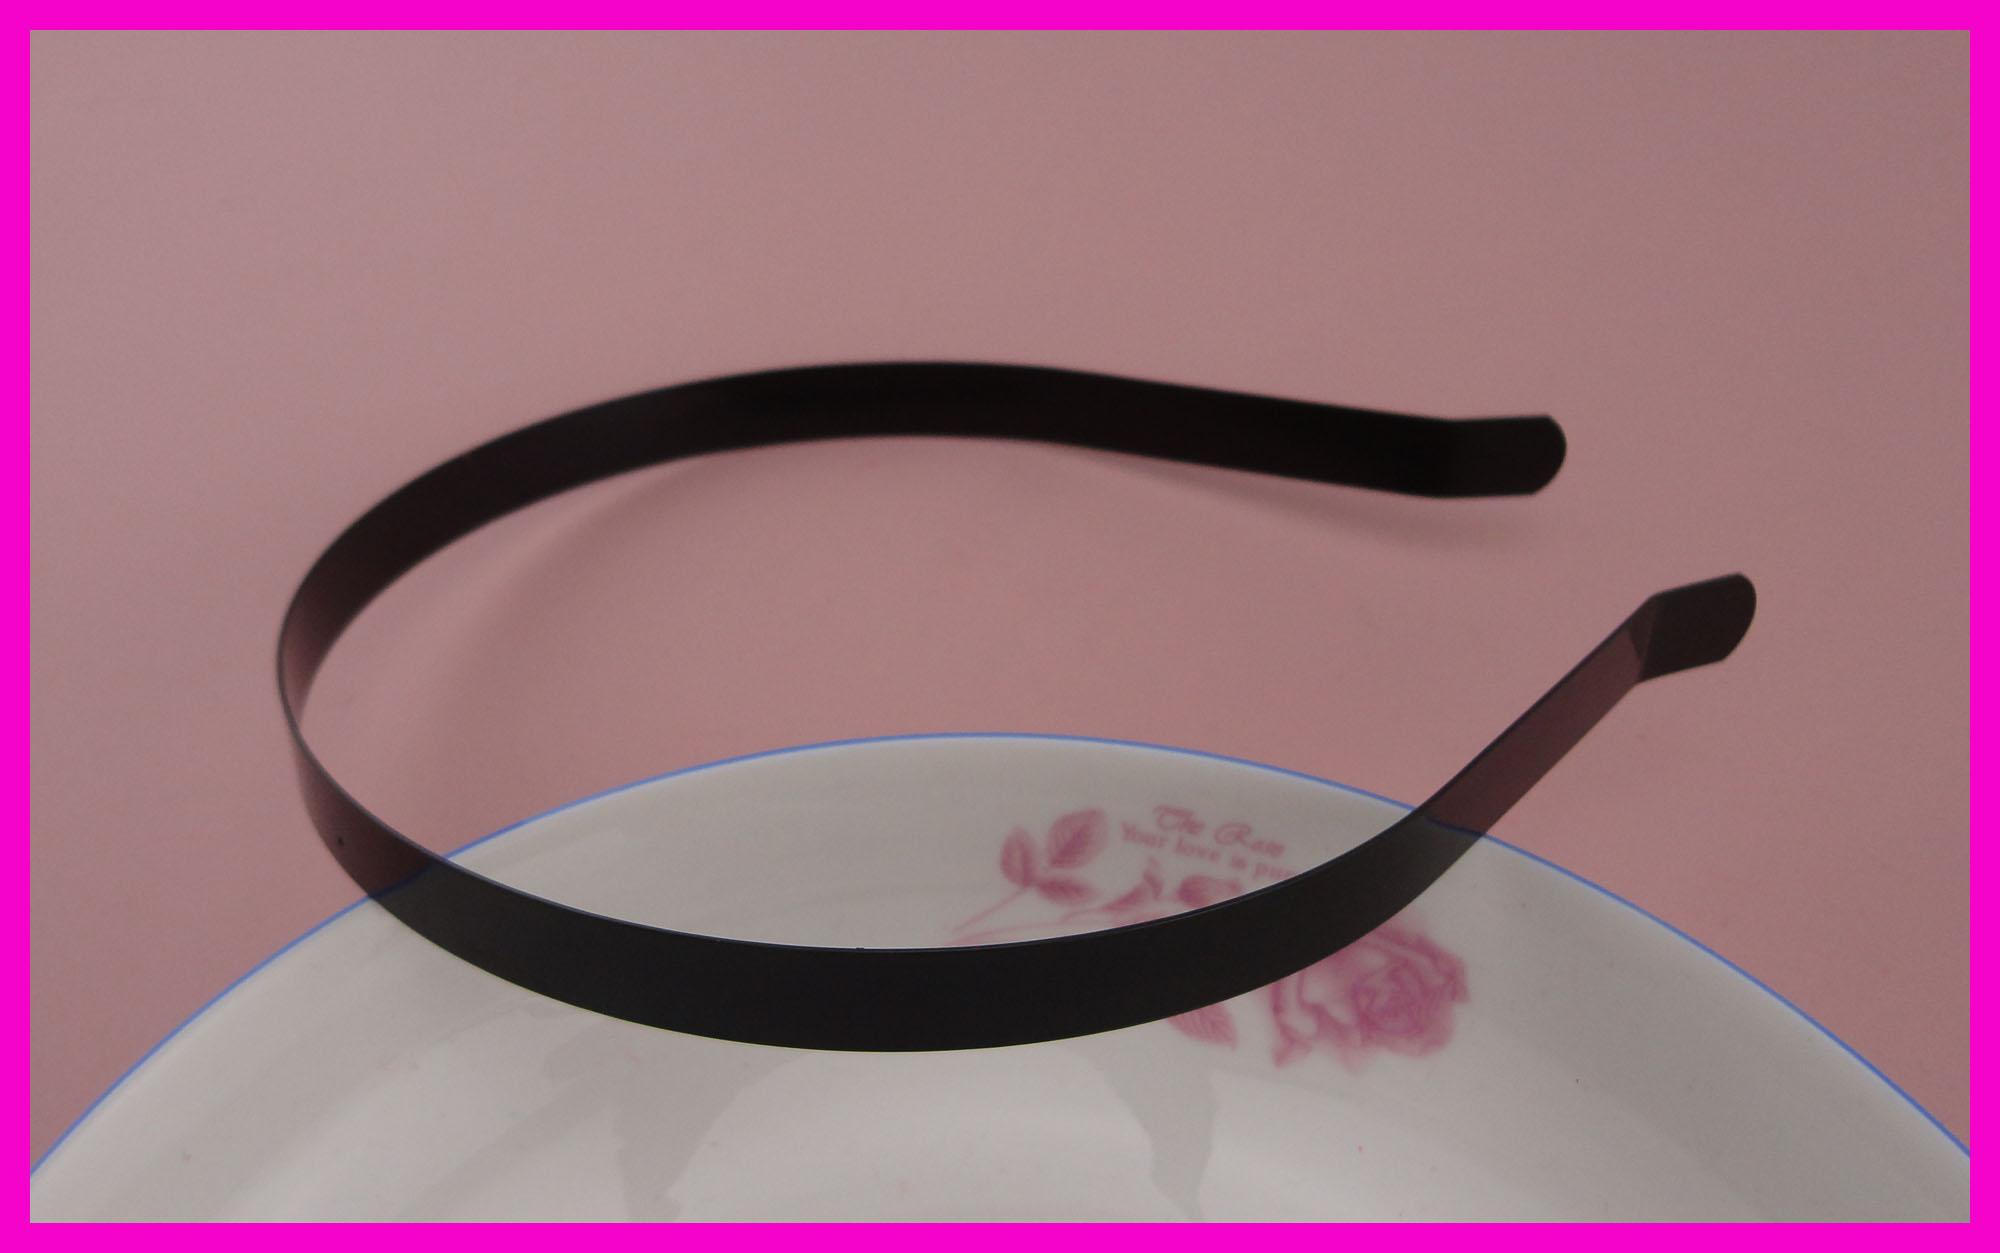 2019 10mm Black Plain Metal Hair Headbands With Bend End At Nickle Free And  Lead Free Quality cc6b077ad2c